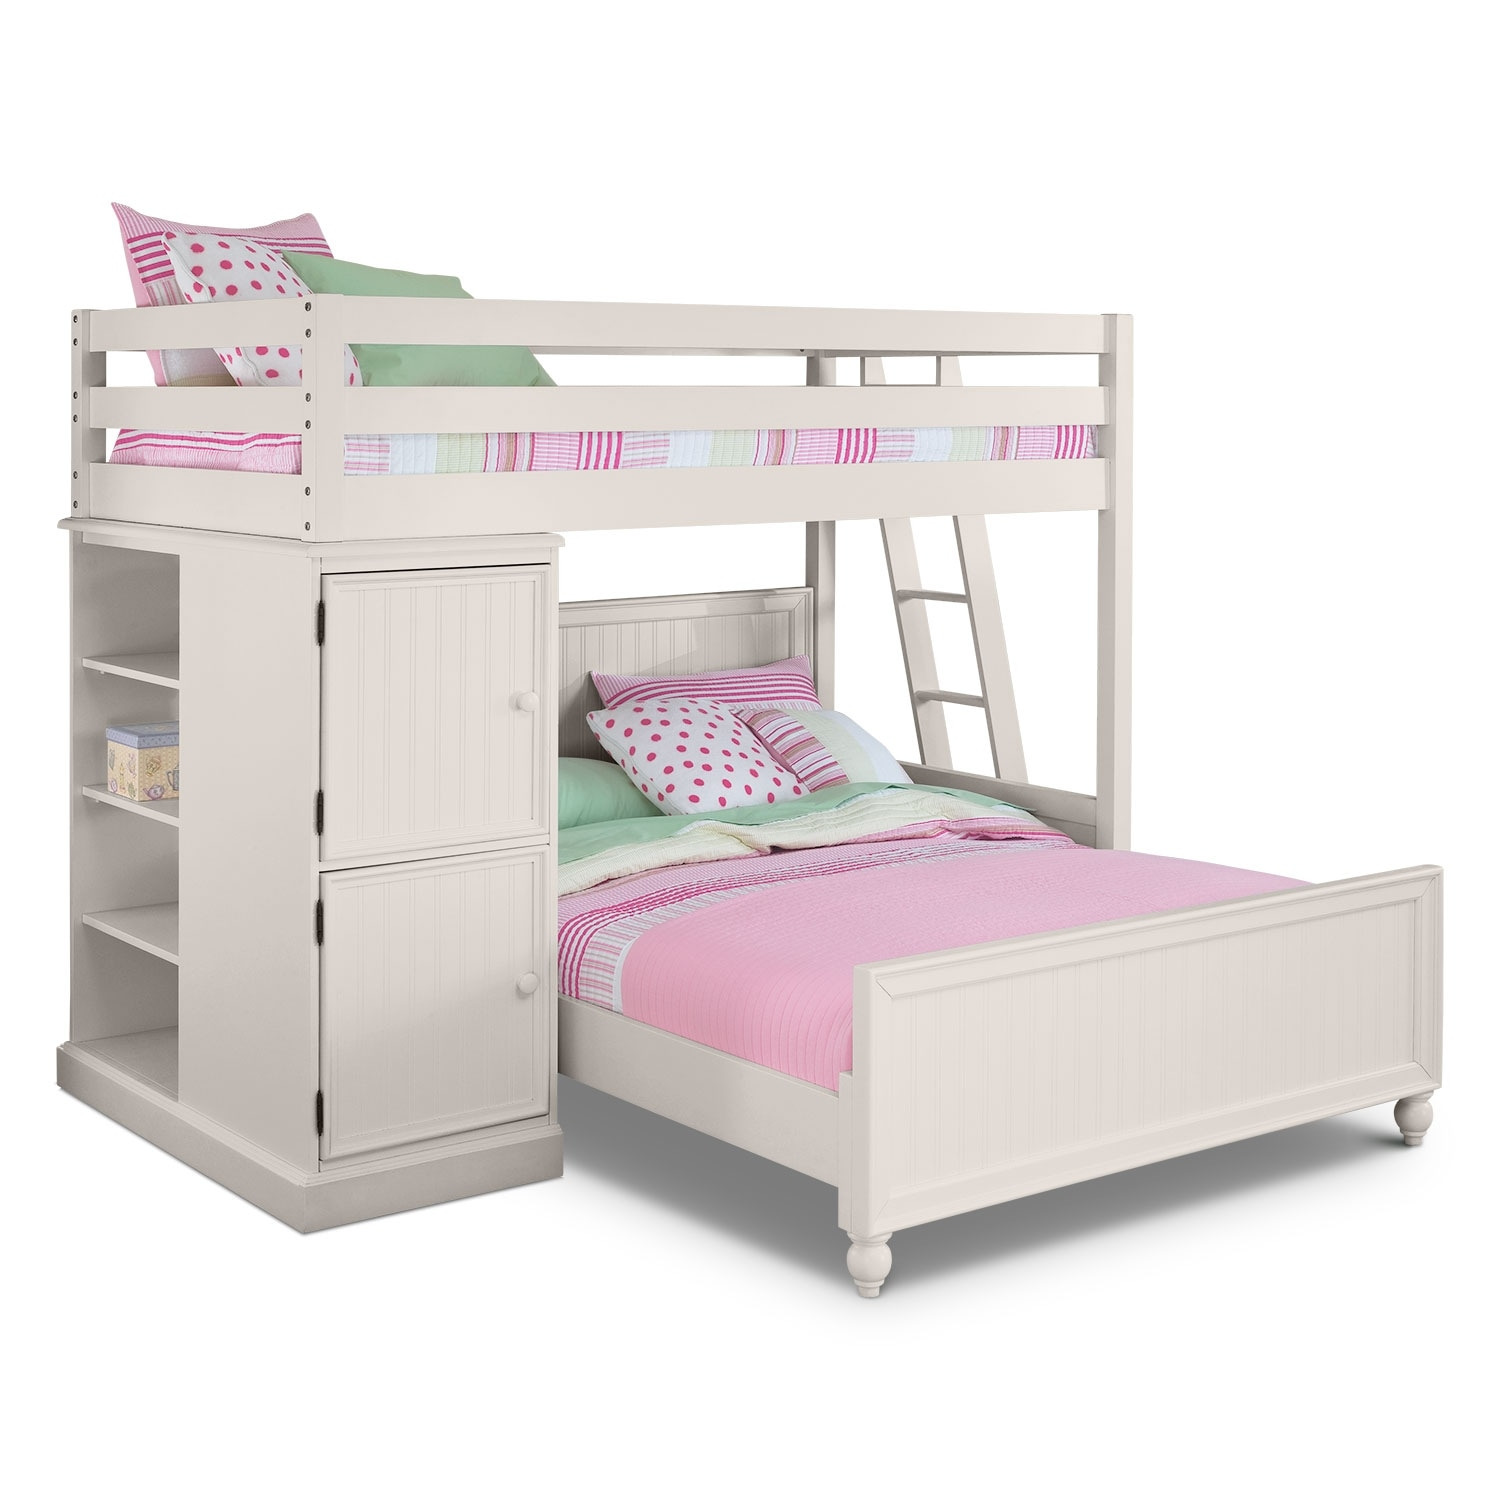 Loft Bed: Colorworks Loft Bed With Full Bed - White